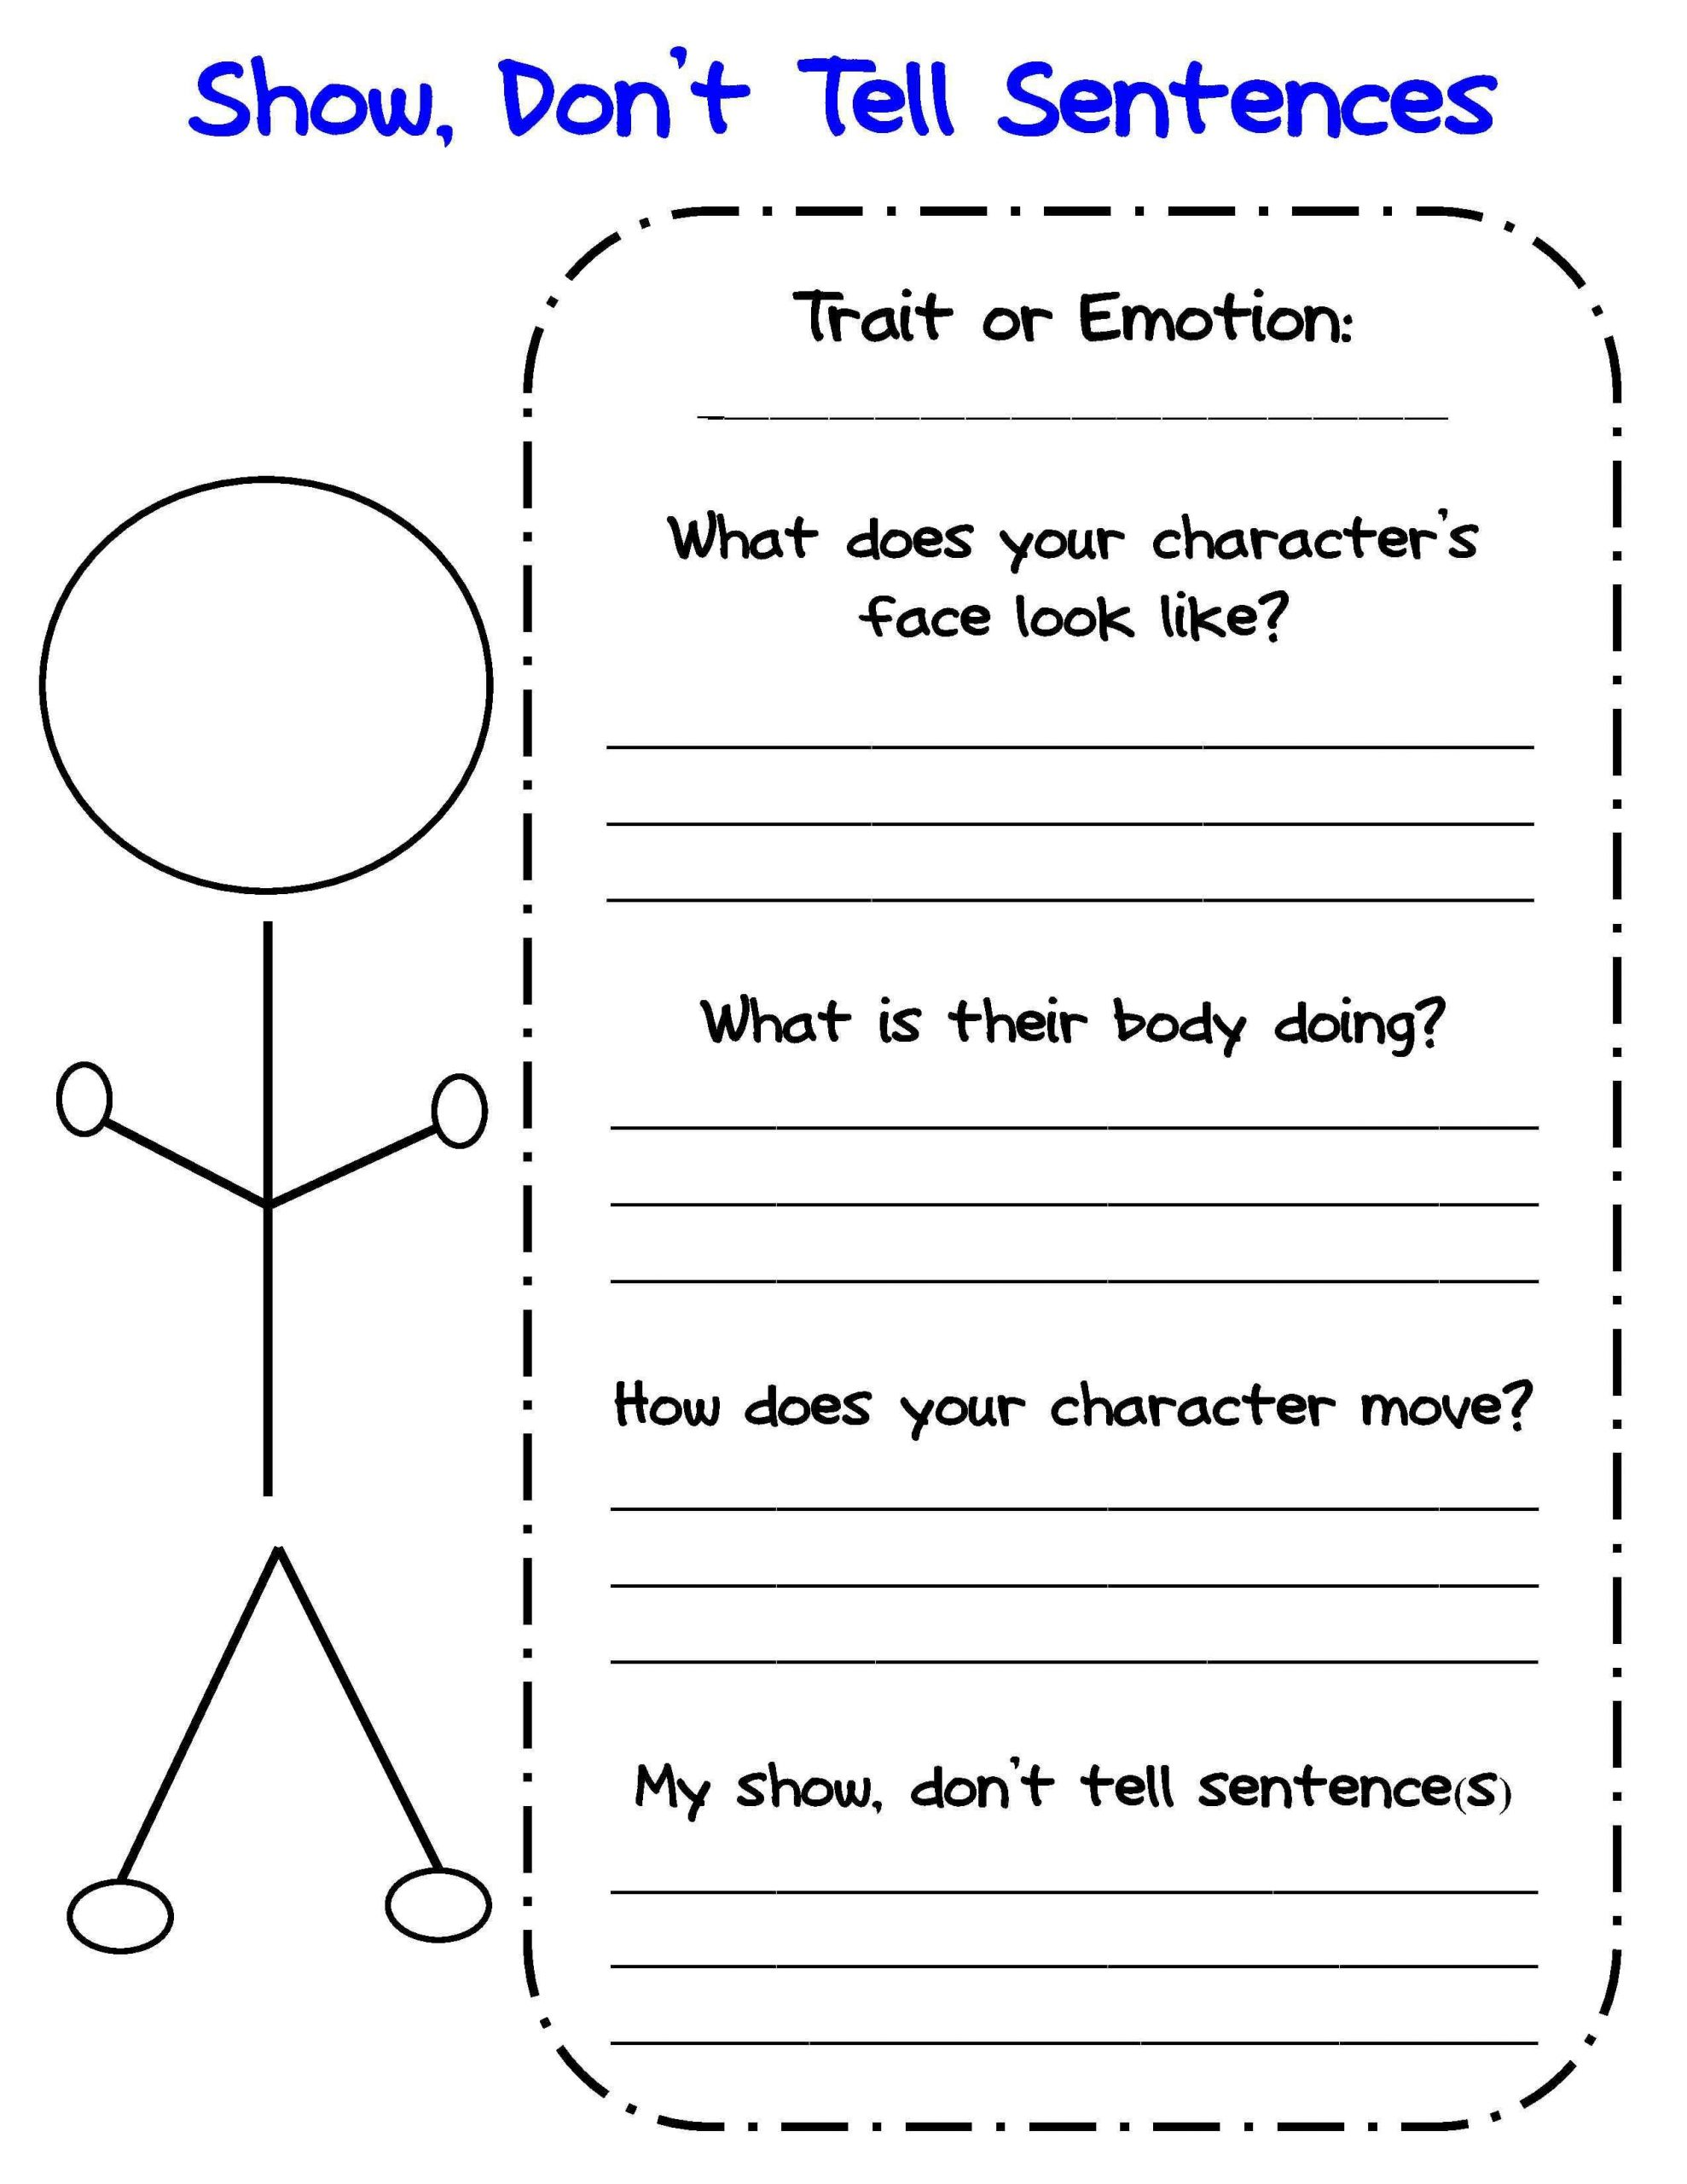 3rd Grade Essay Writing Worksheet Graphic organizers for Personal Narratives